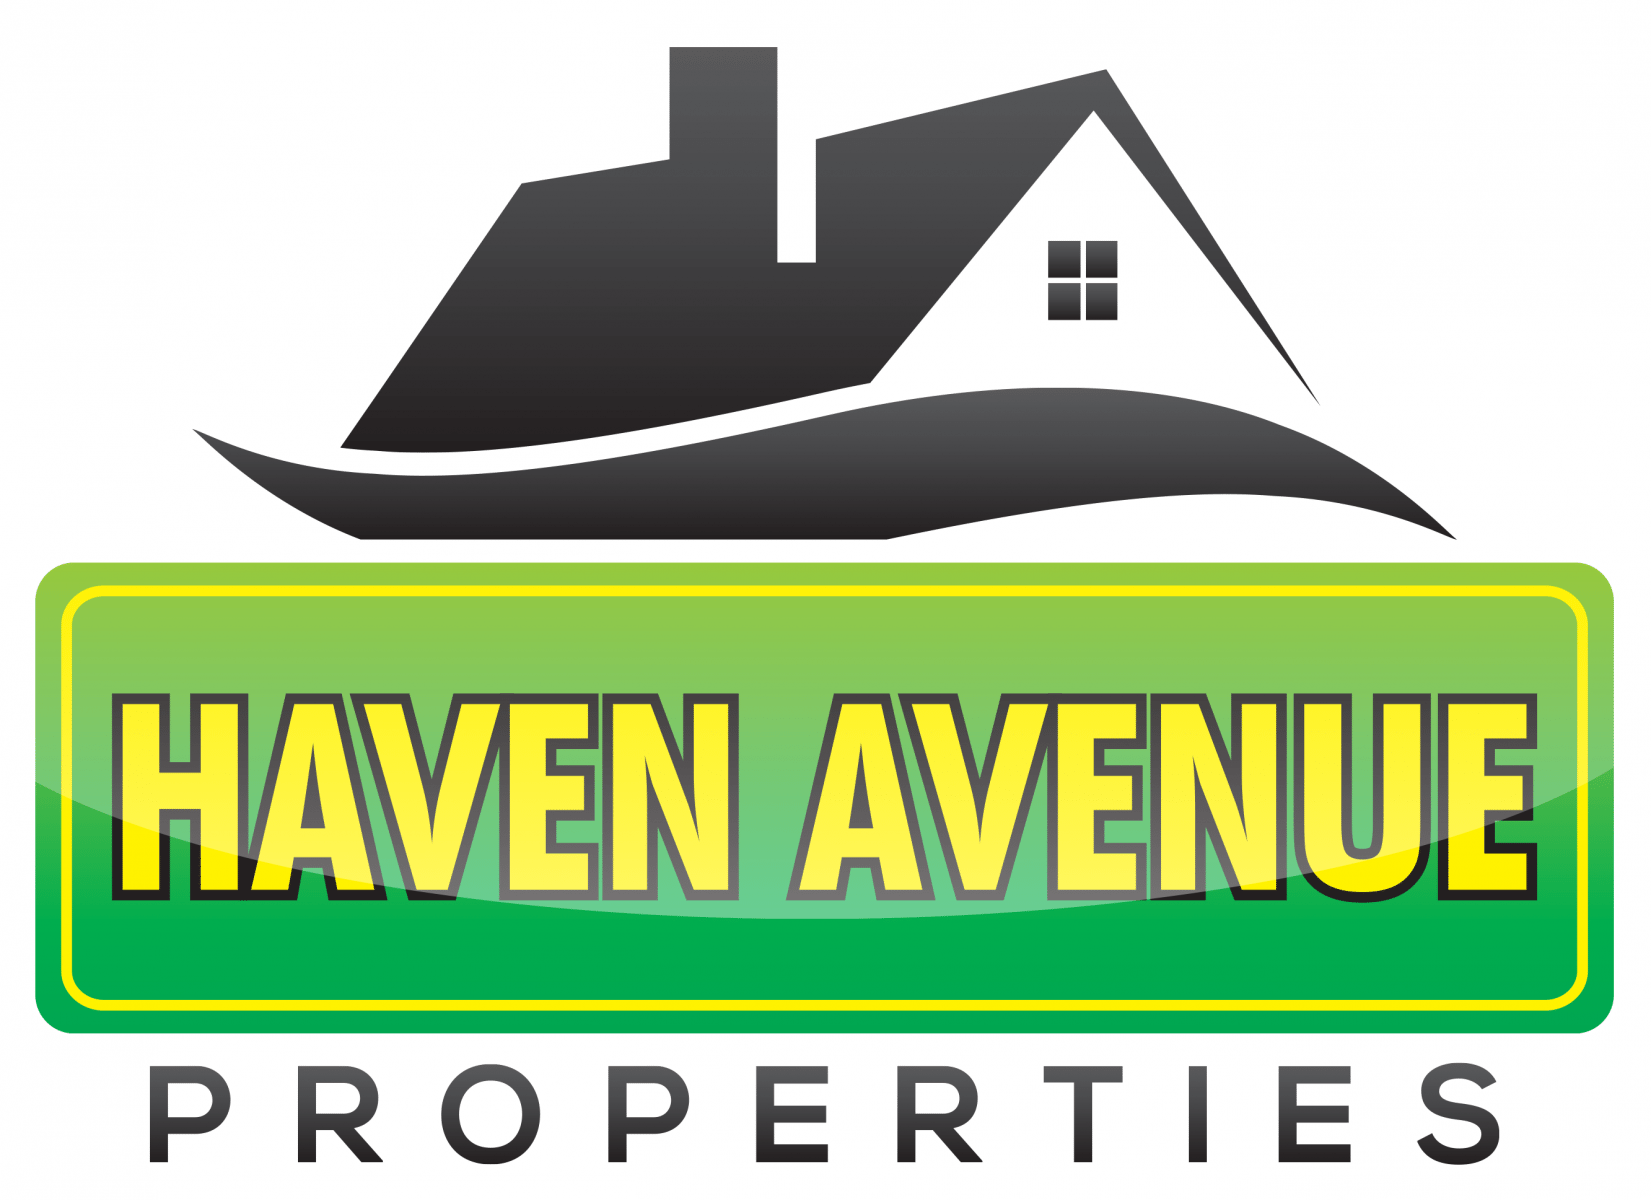 Haven Avenue Properties logo